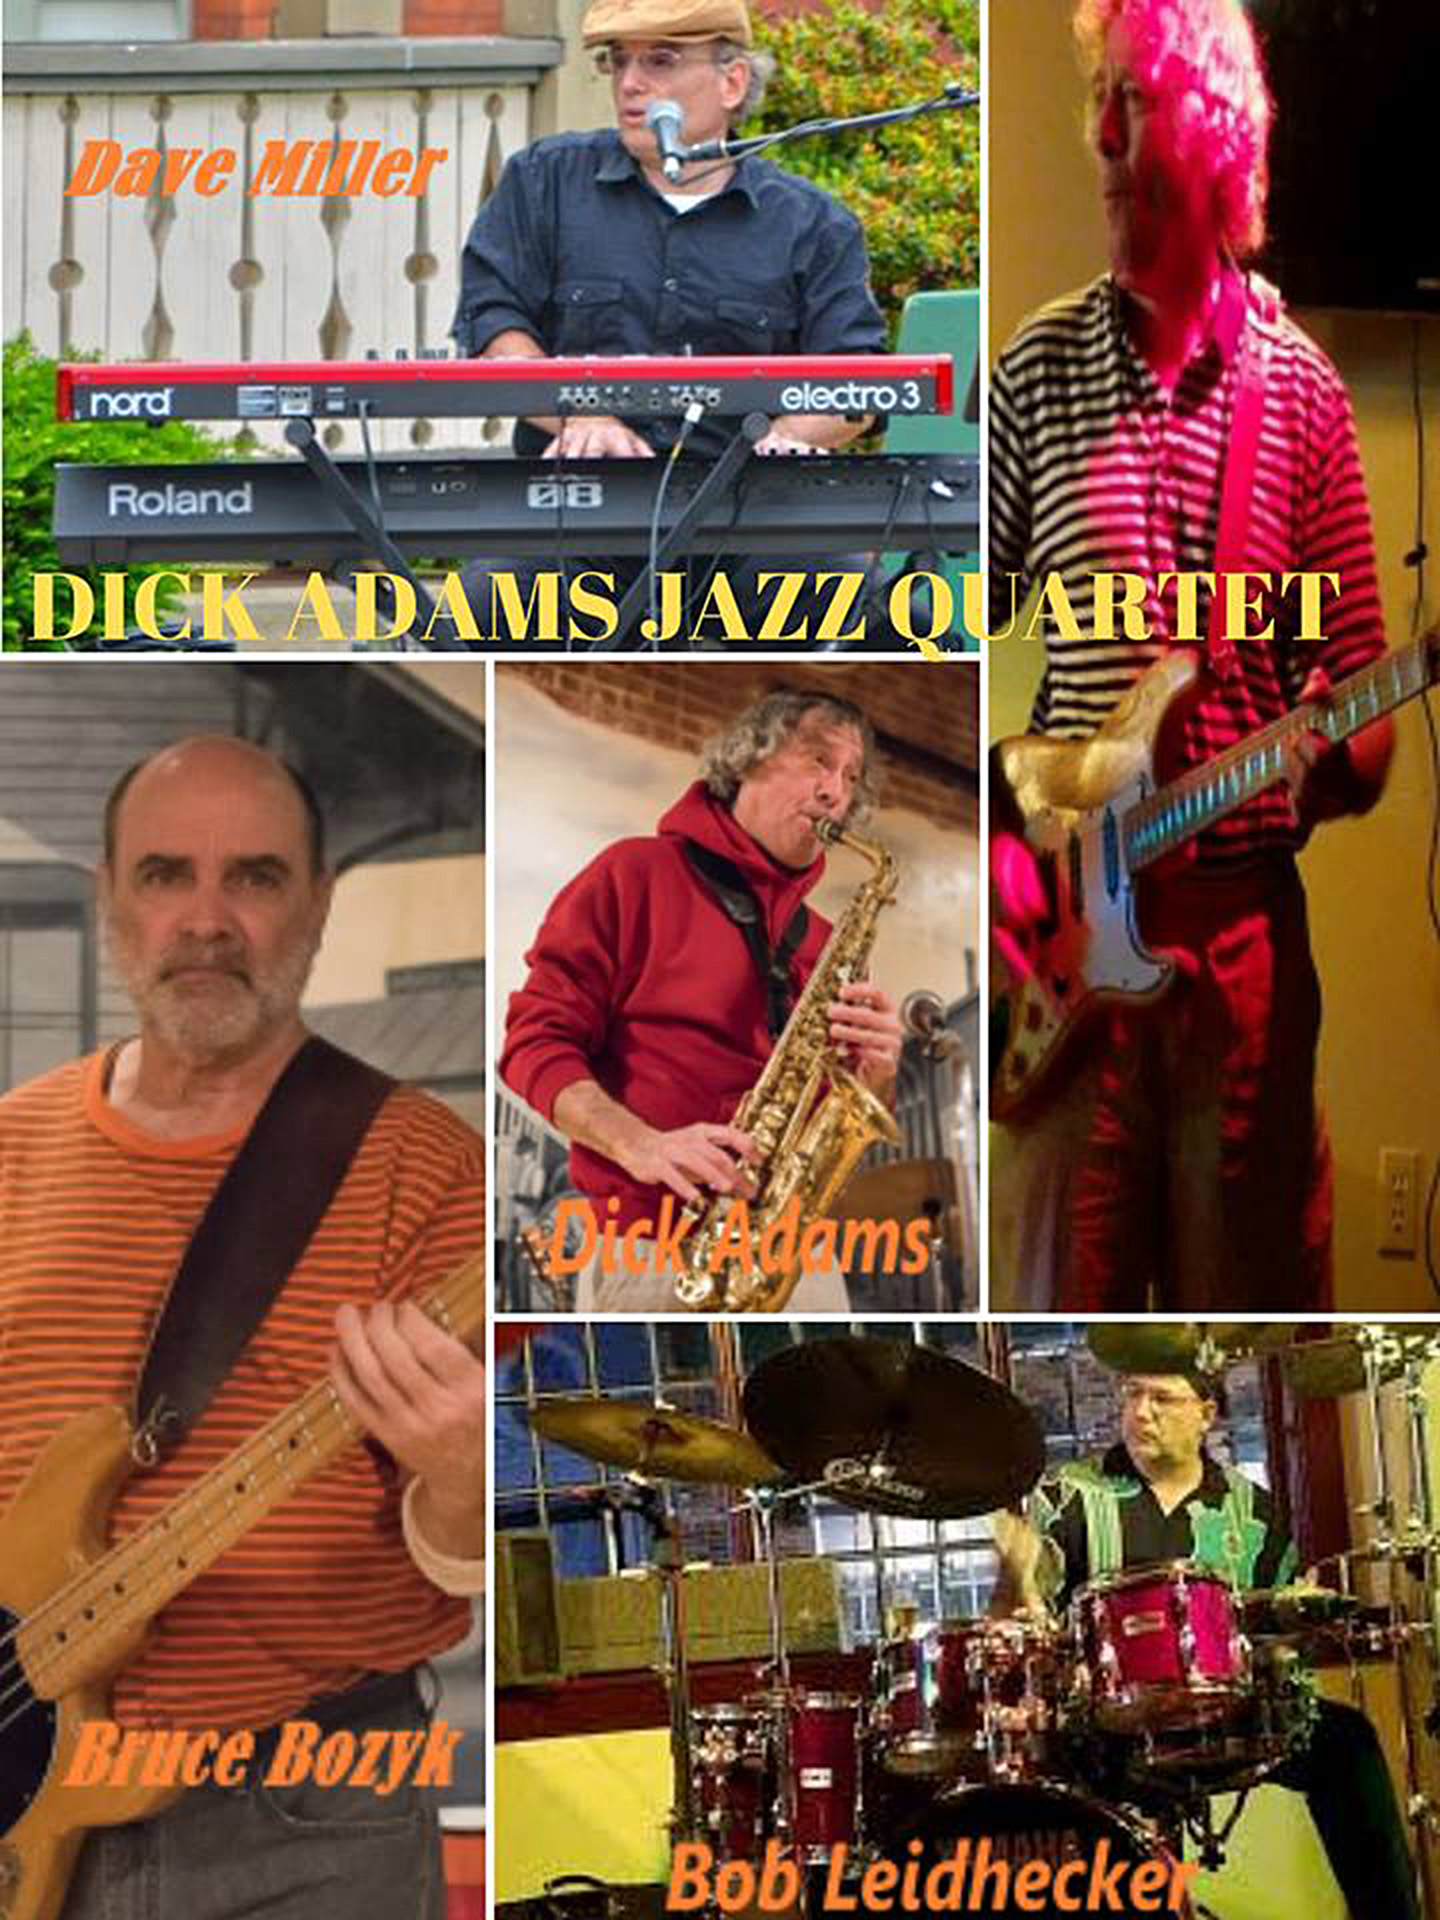 Dick Adams Quartet.jpg